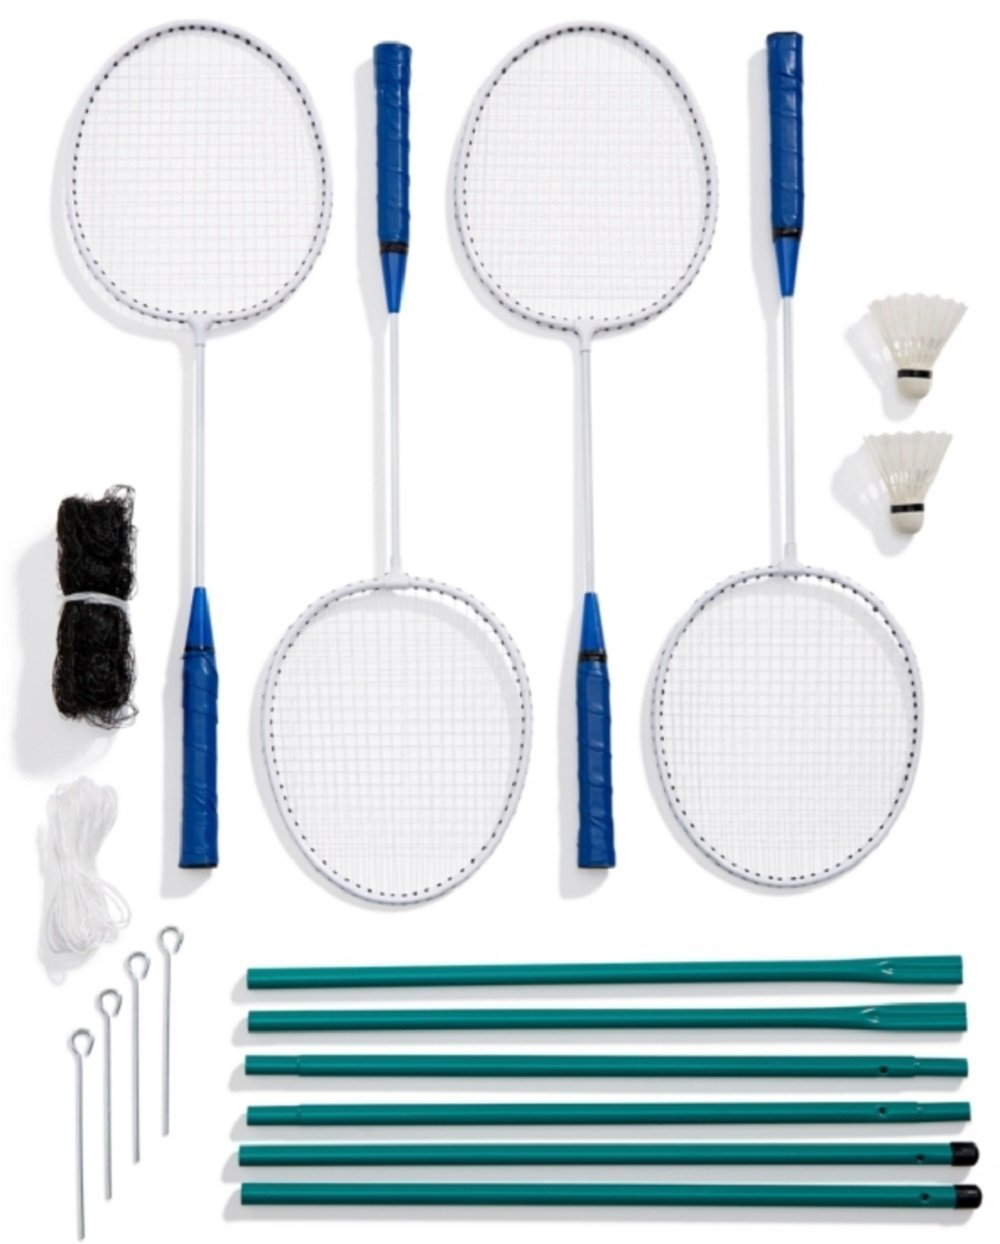 Celebrate Shop Garden Games 4-Player Badminton Set